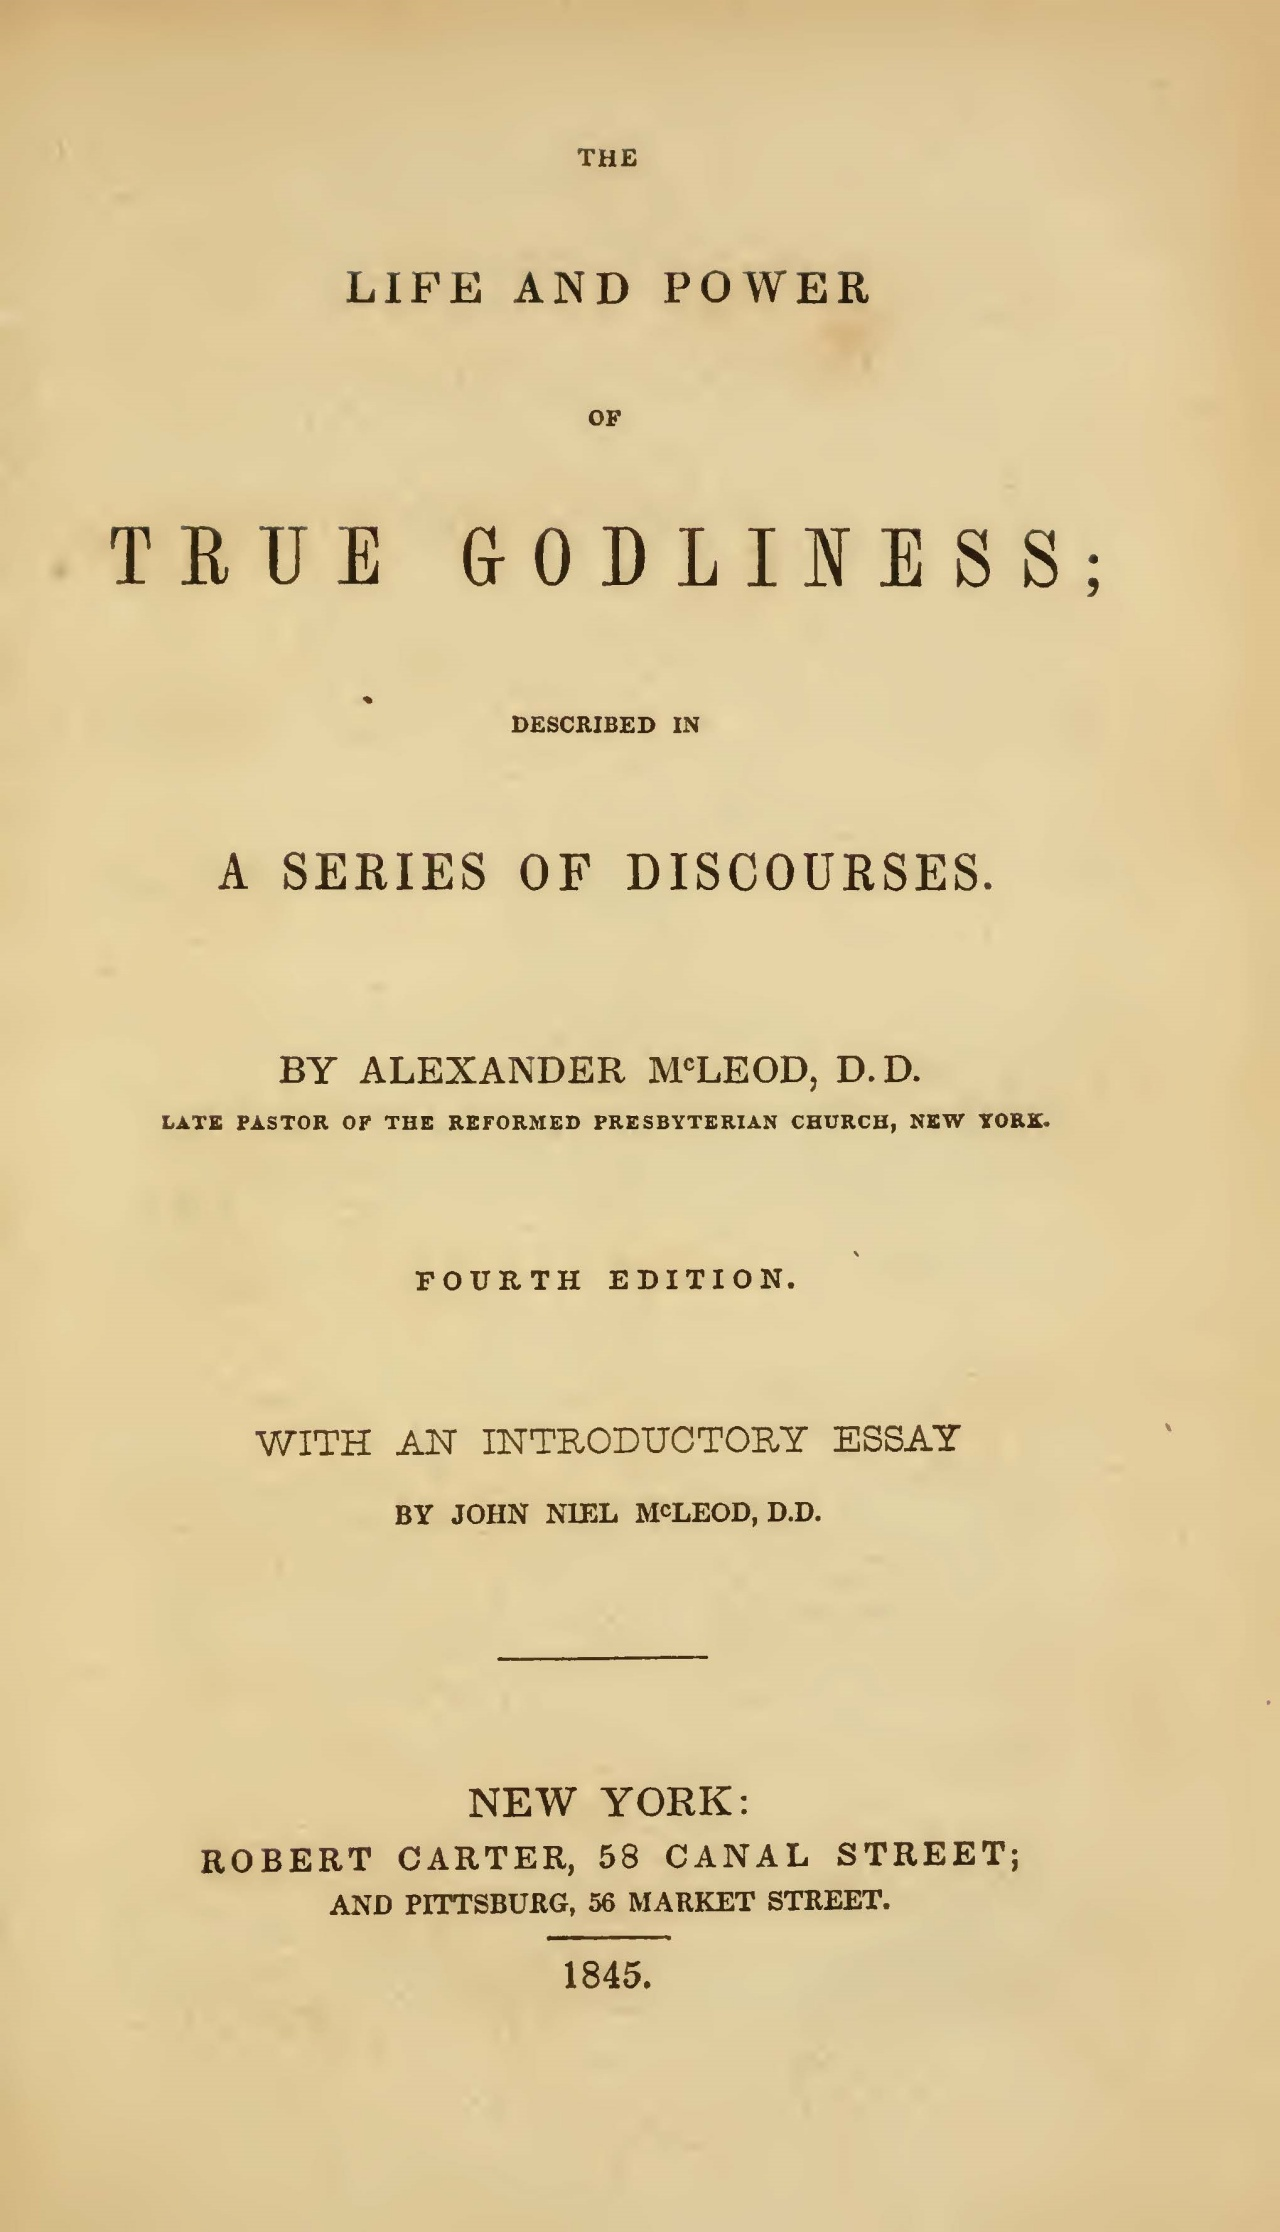 McLeod, John Niel, Introductory Essay to Alexander McLeod's The Life and Power of True Godliness Title Page.jpg